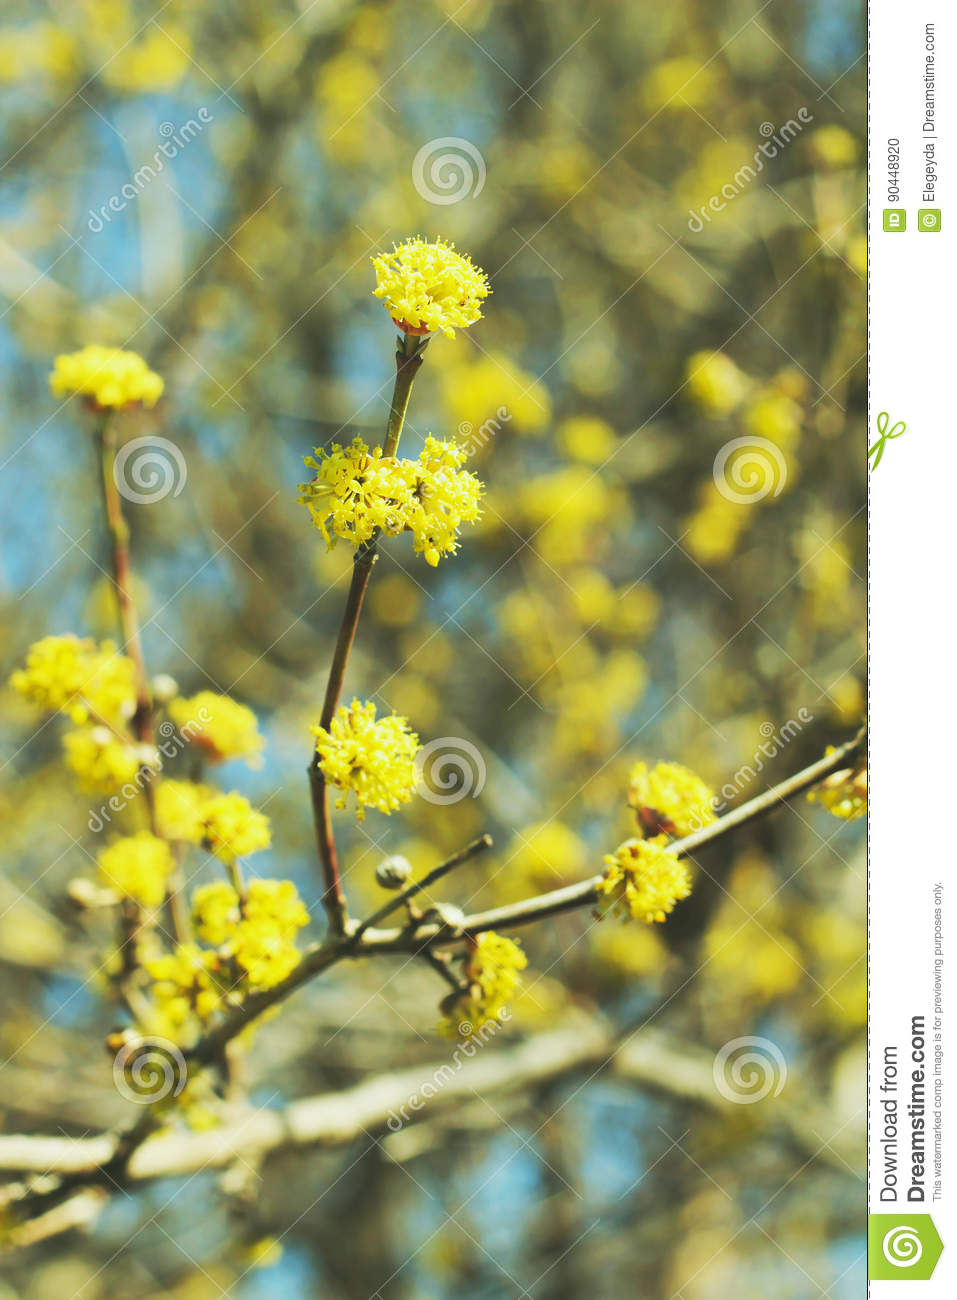 Spring View Beautiful Blooming Tree With Yellow Flowers Stock Photo